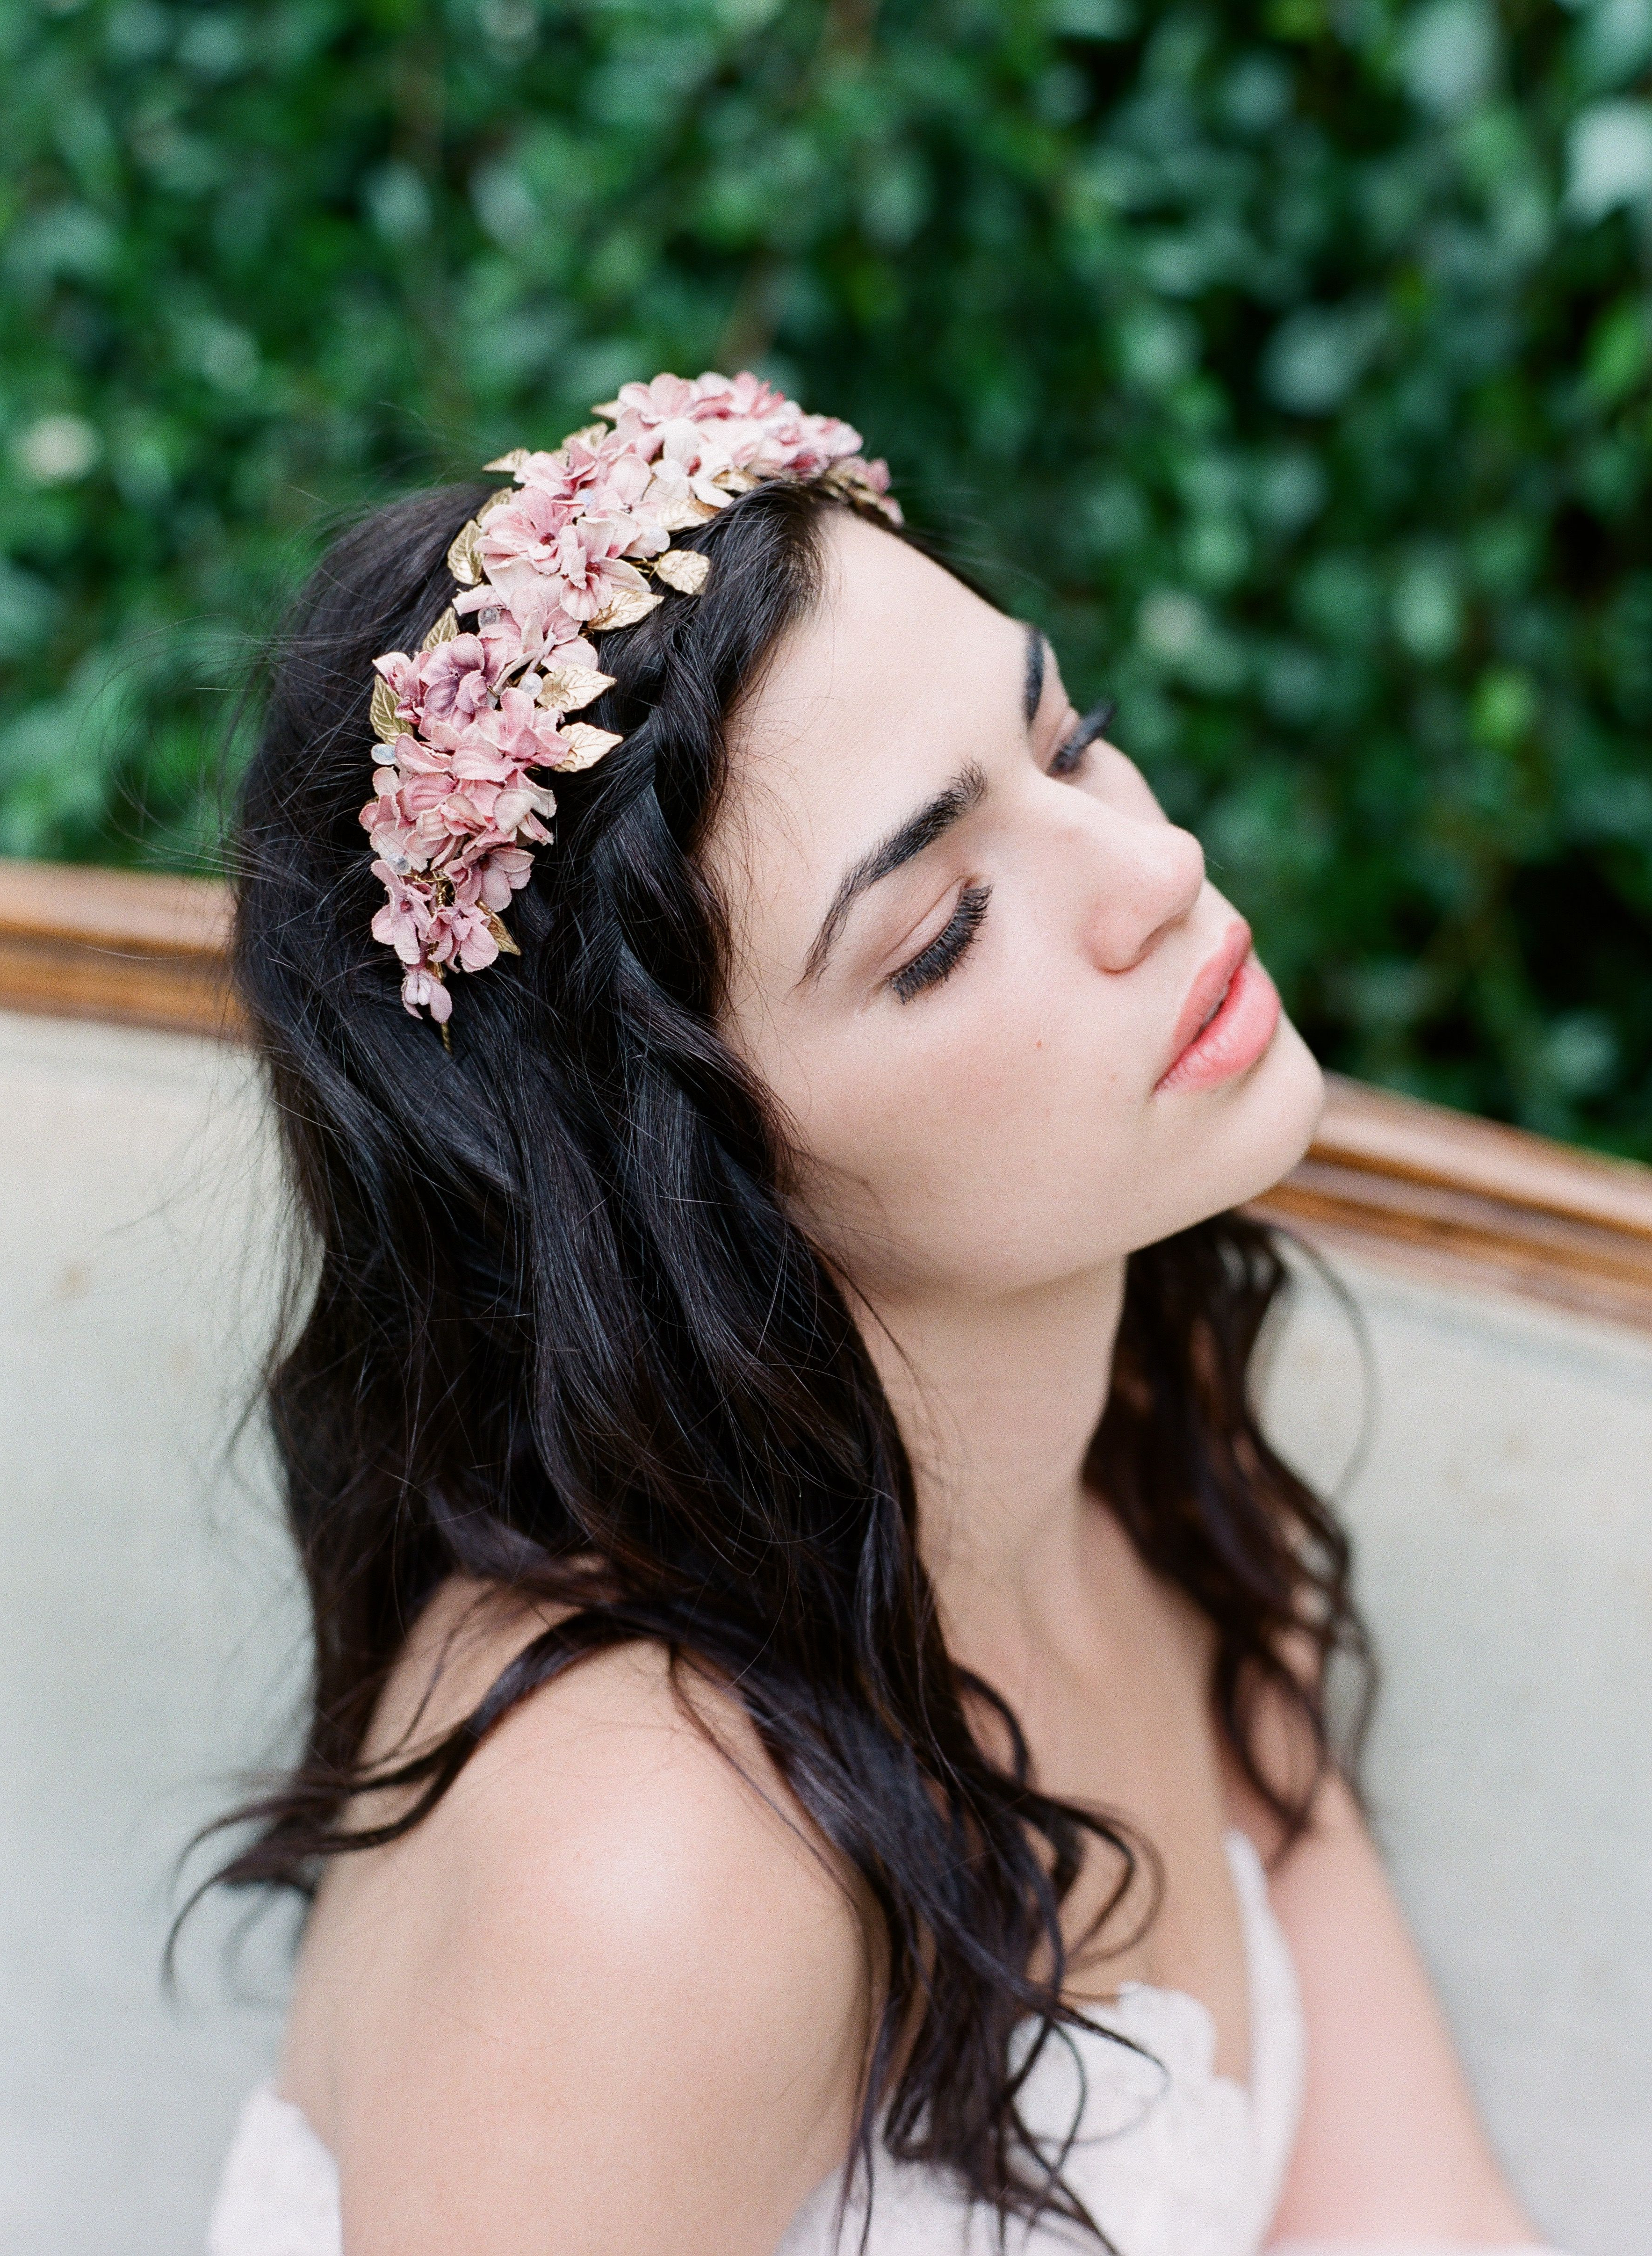 Recent Undone Low Bun Bridal Hairstyles With Floral Headband Pertaining To Half Up Half Down Bridal Style Wedding Hairstyle With Flower Crown (View 8 of 20)